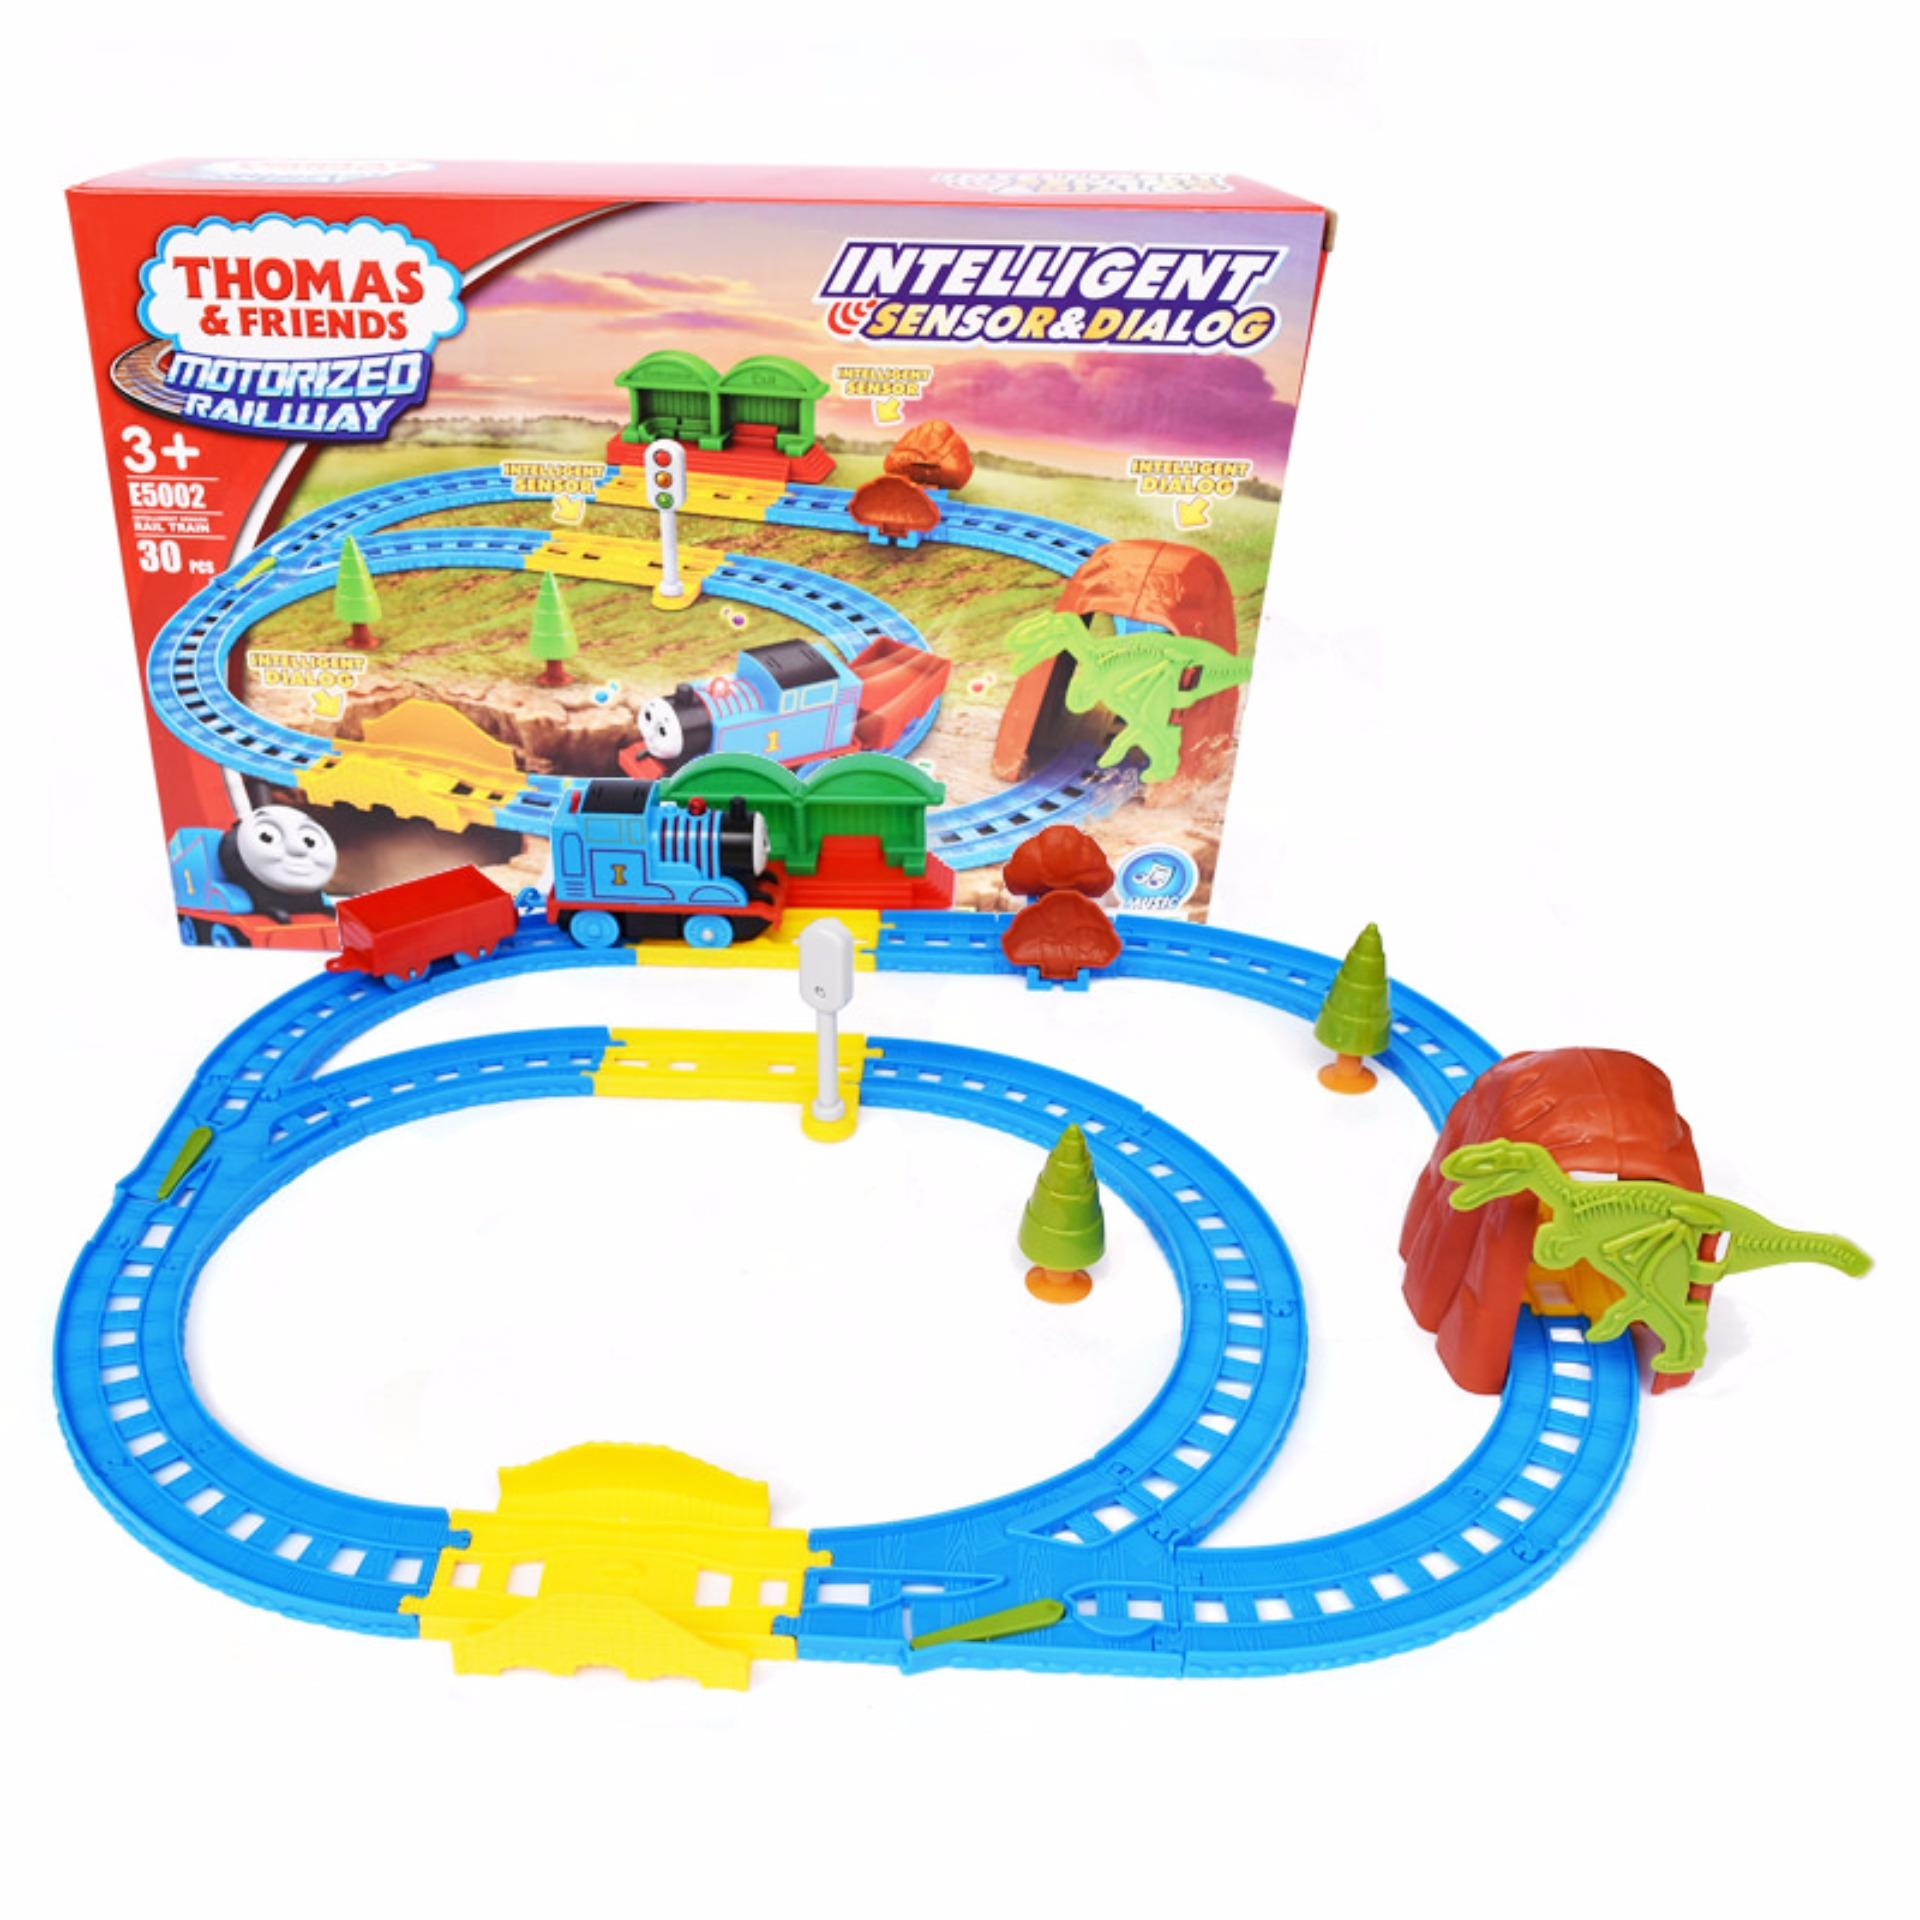 Top 10 Thomas And Friends Motorized Railway With Intelligent Sensor E5002 Online